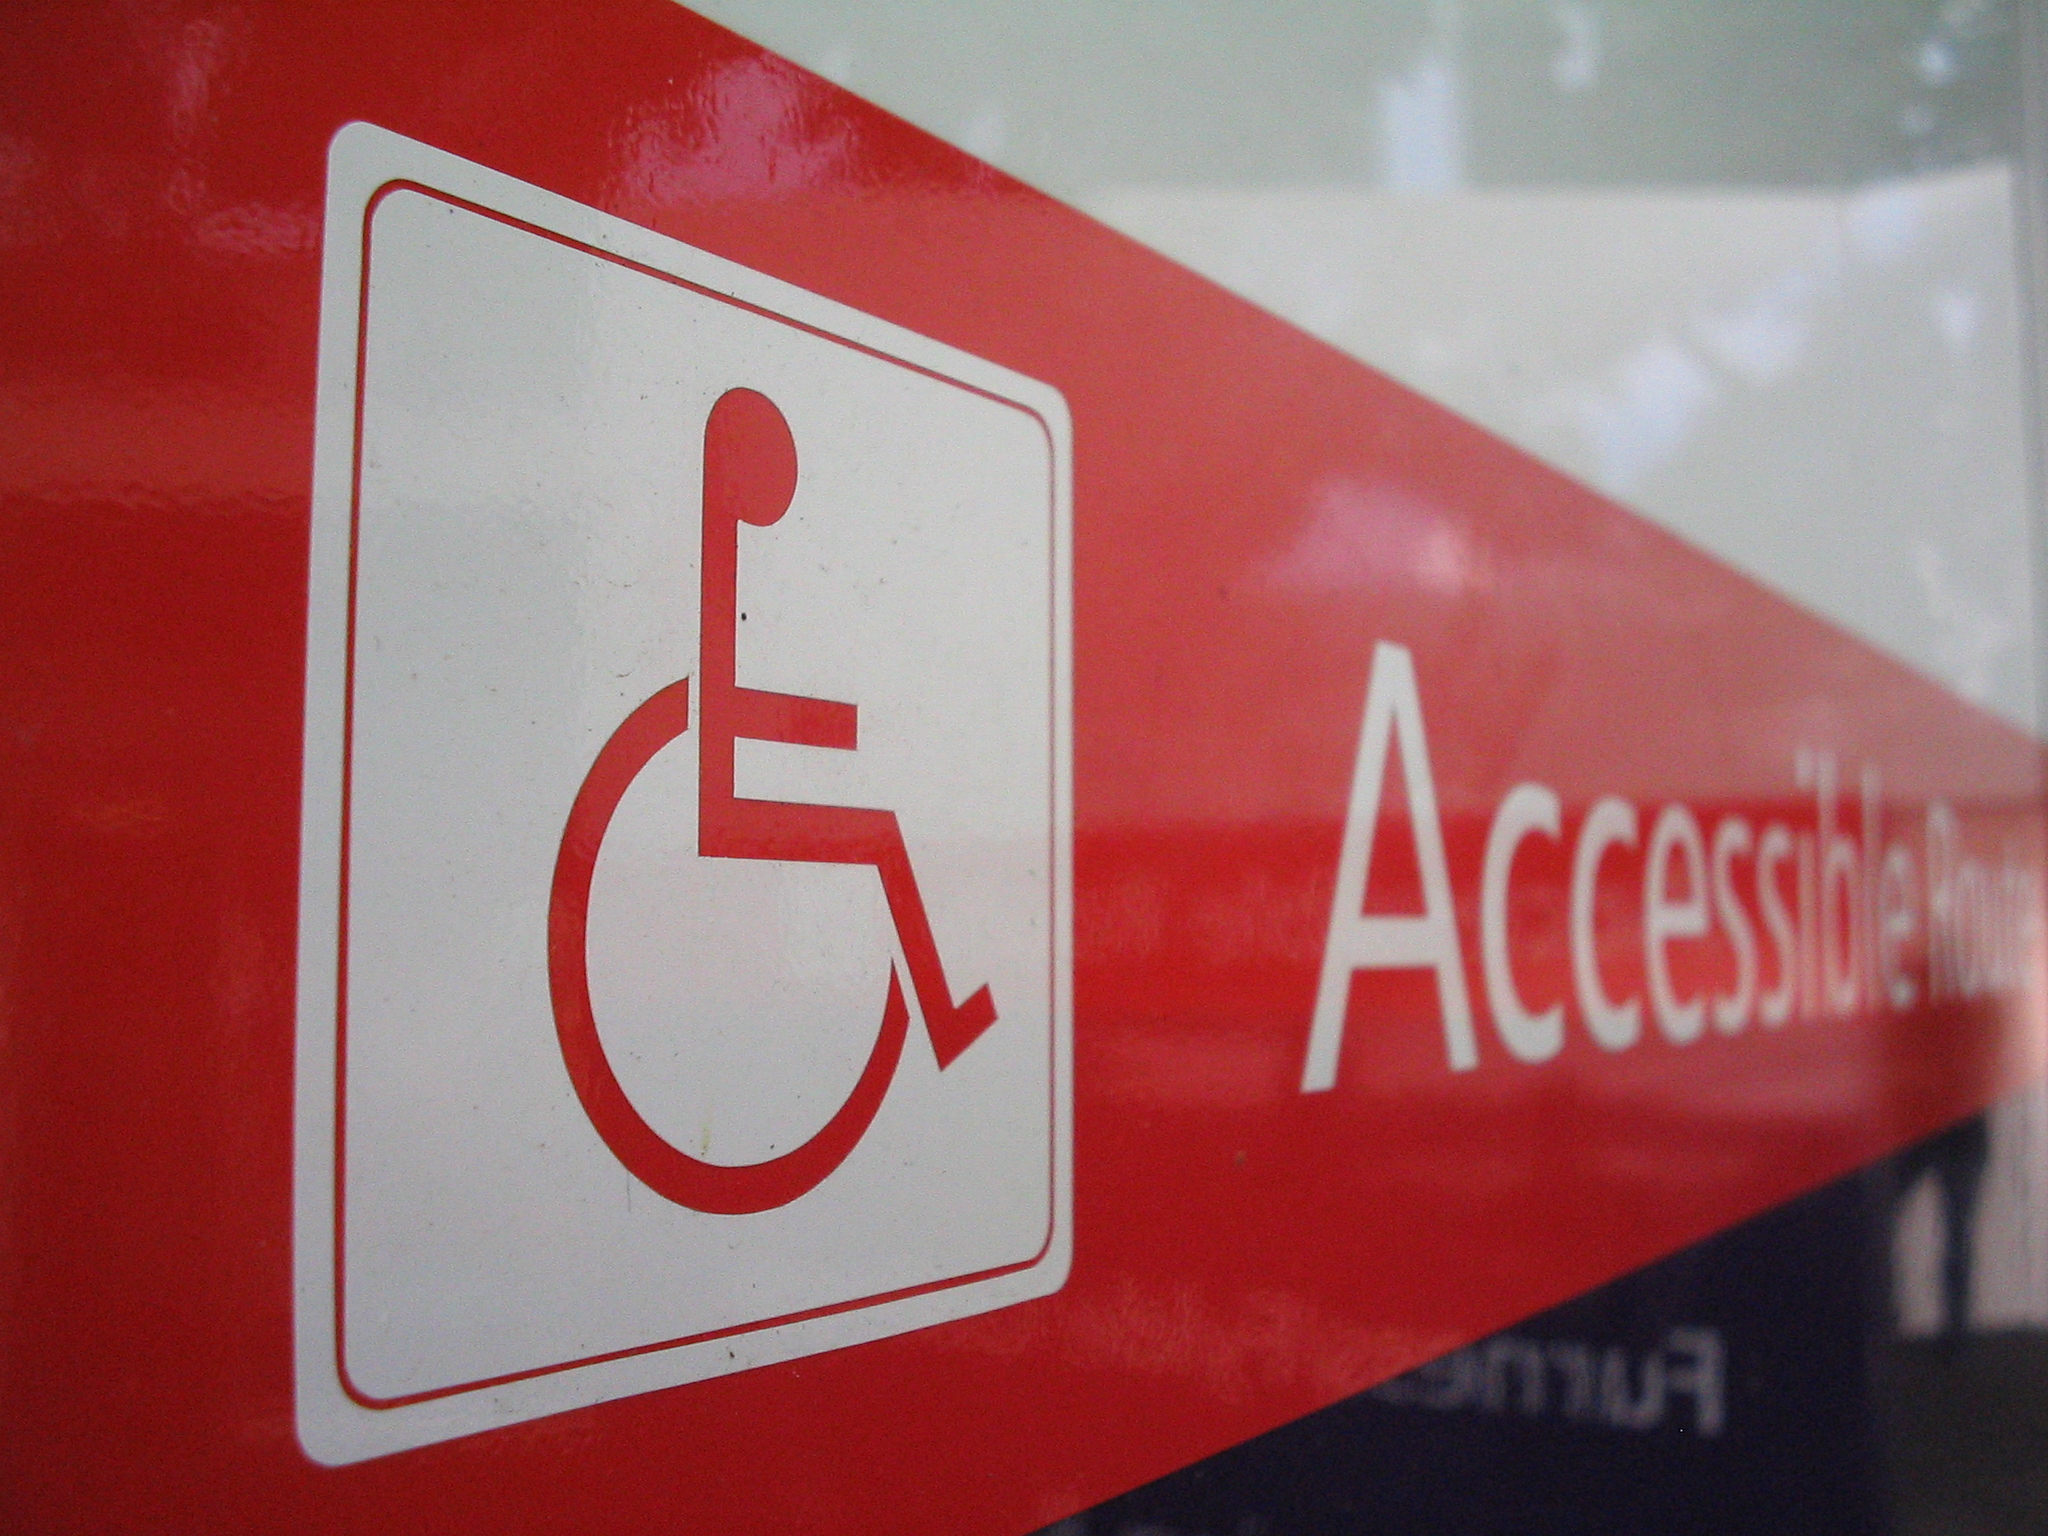 Linchris Mobility Services providing accessibility solutions to homes and vehicles in Caerphilly and Newport